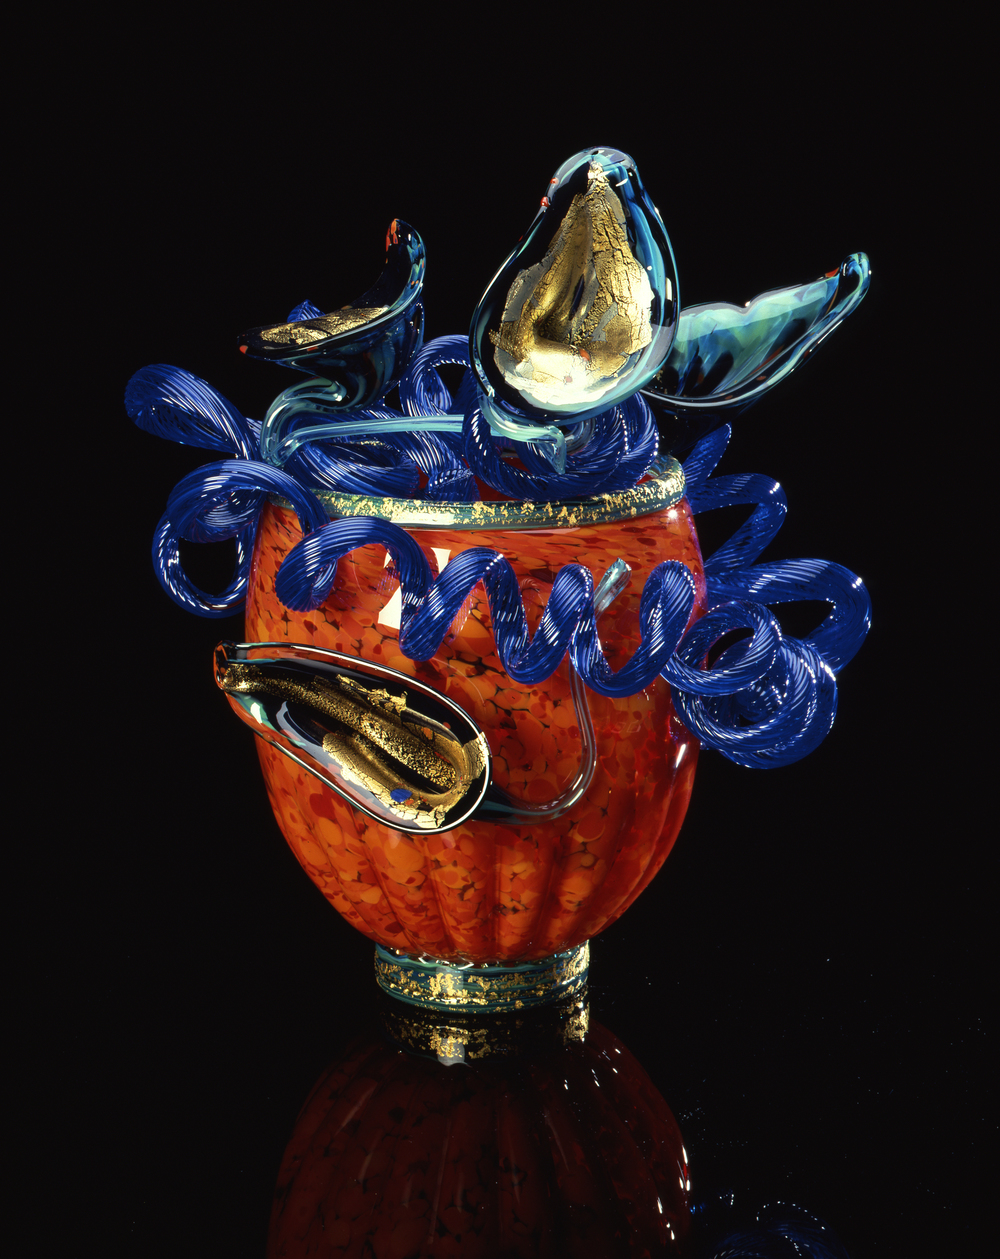 Dale Chihuly,  Cadmium Orange Venetian #350  (1990, glass, 19 x 15 x 13 inches)